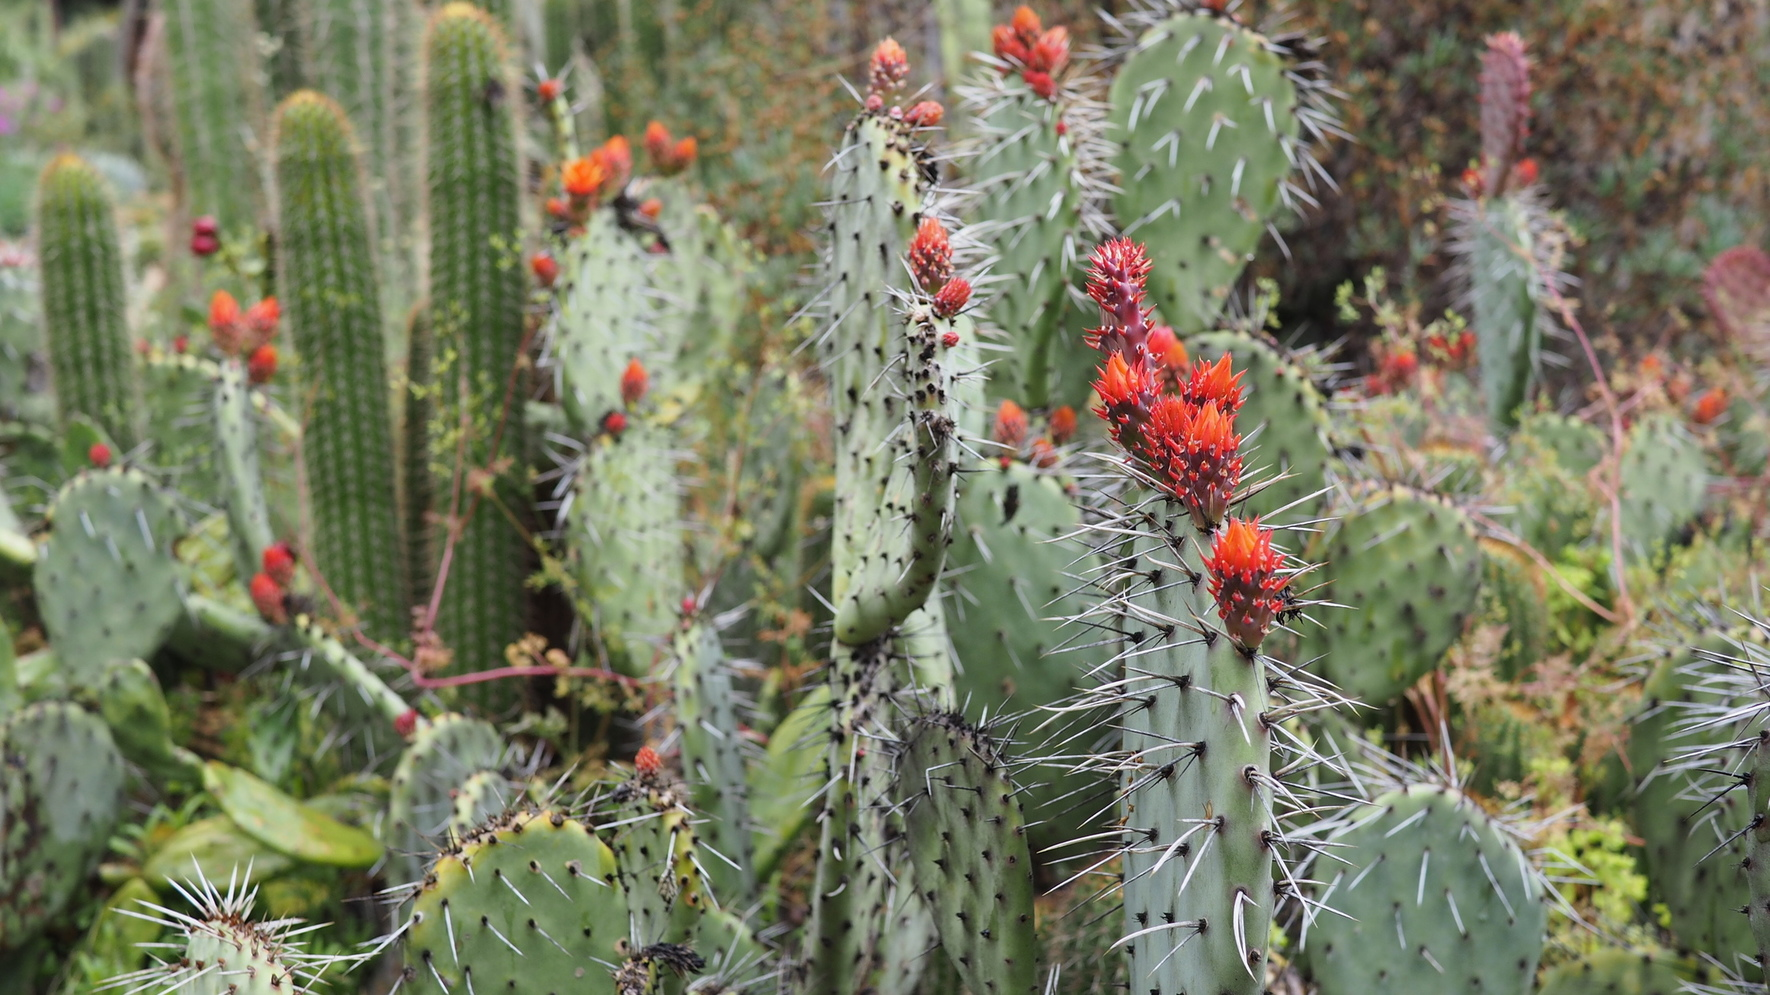 Fortunately, I Got Tips To Visit The Cactus Garden And The Stone River  Sculpture, Both Of Which I Recommend Very Highly As Quiet, Beautiful, ...